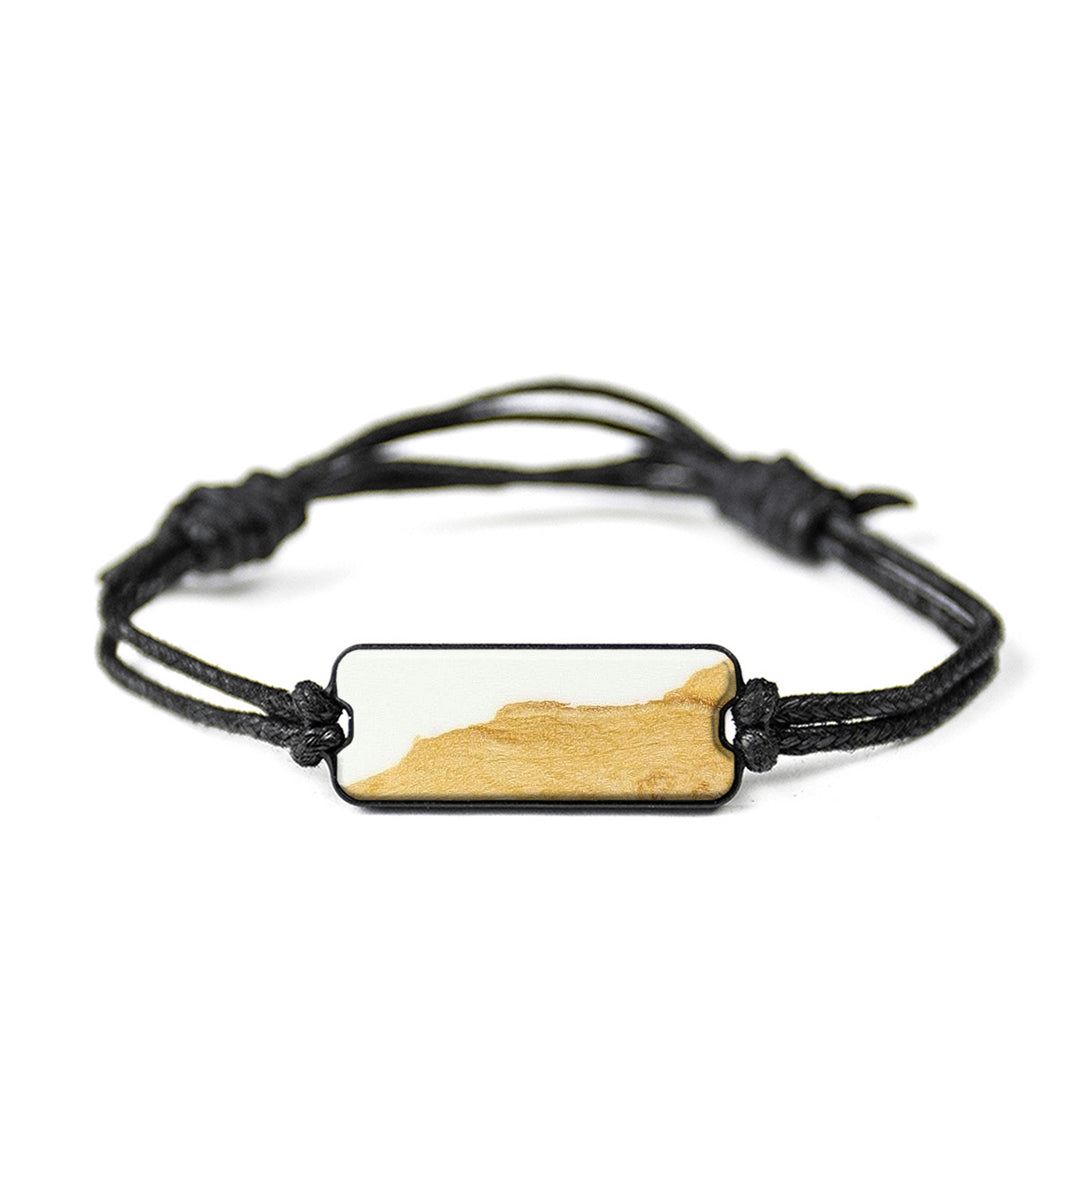 Classic Wood+Resin Bracelet - Demetri (Black & White, 394158)